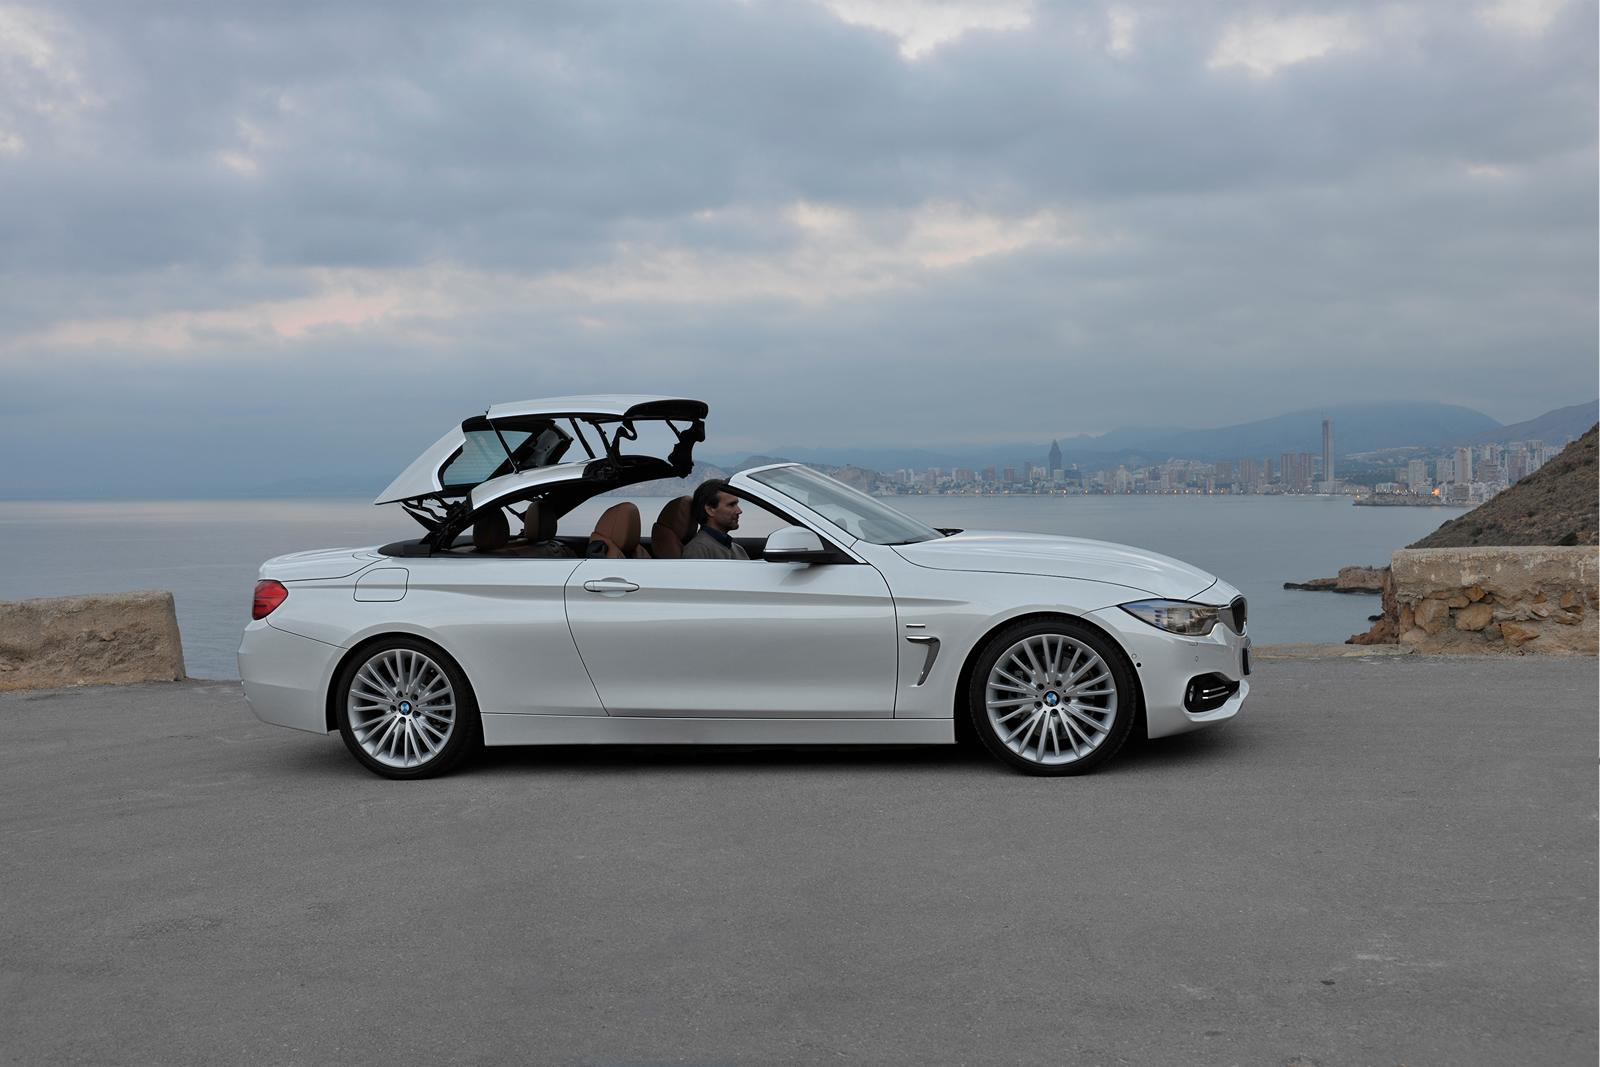 2014 BMW 4-Series Convertible Pics, Vehicles Collection